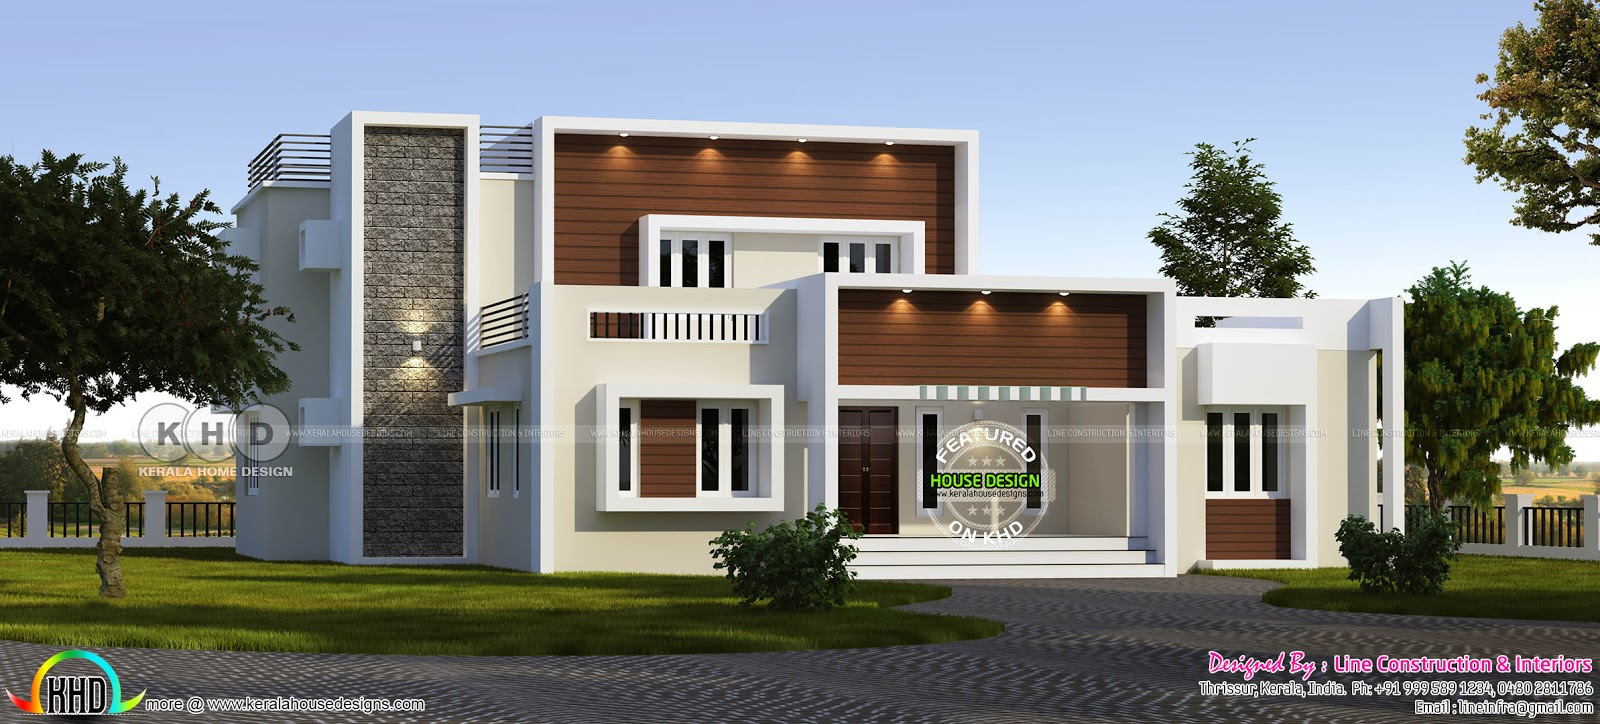 5 bedroom contemporary residence design  Kerala home